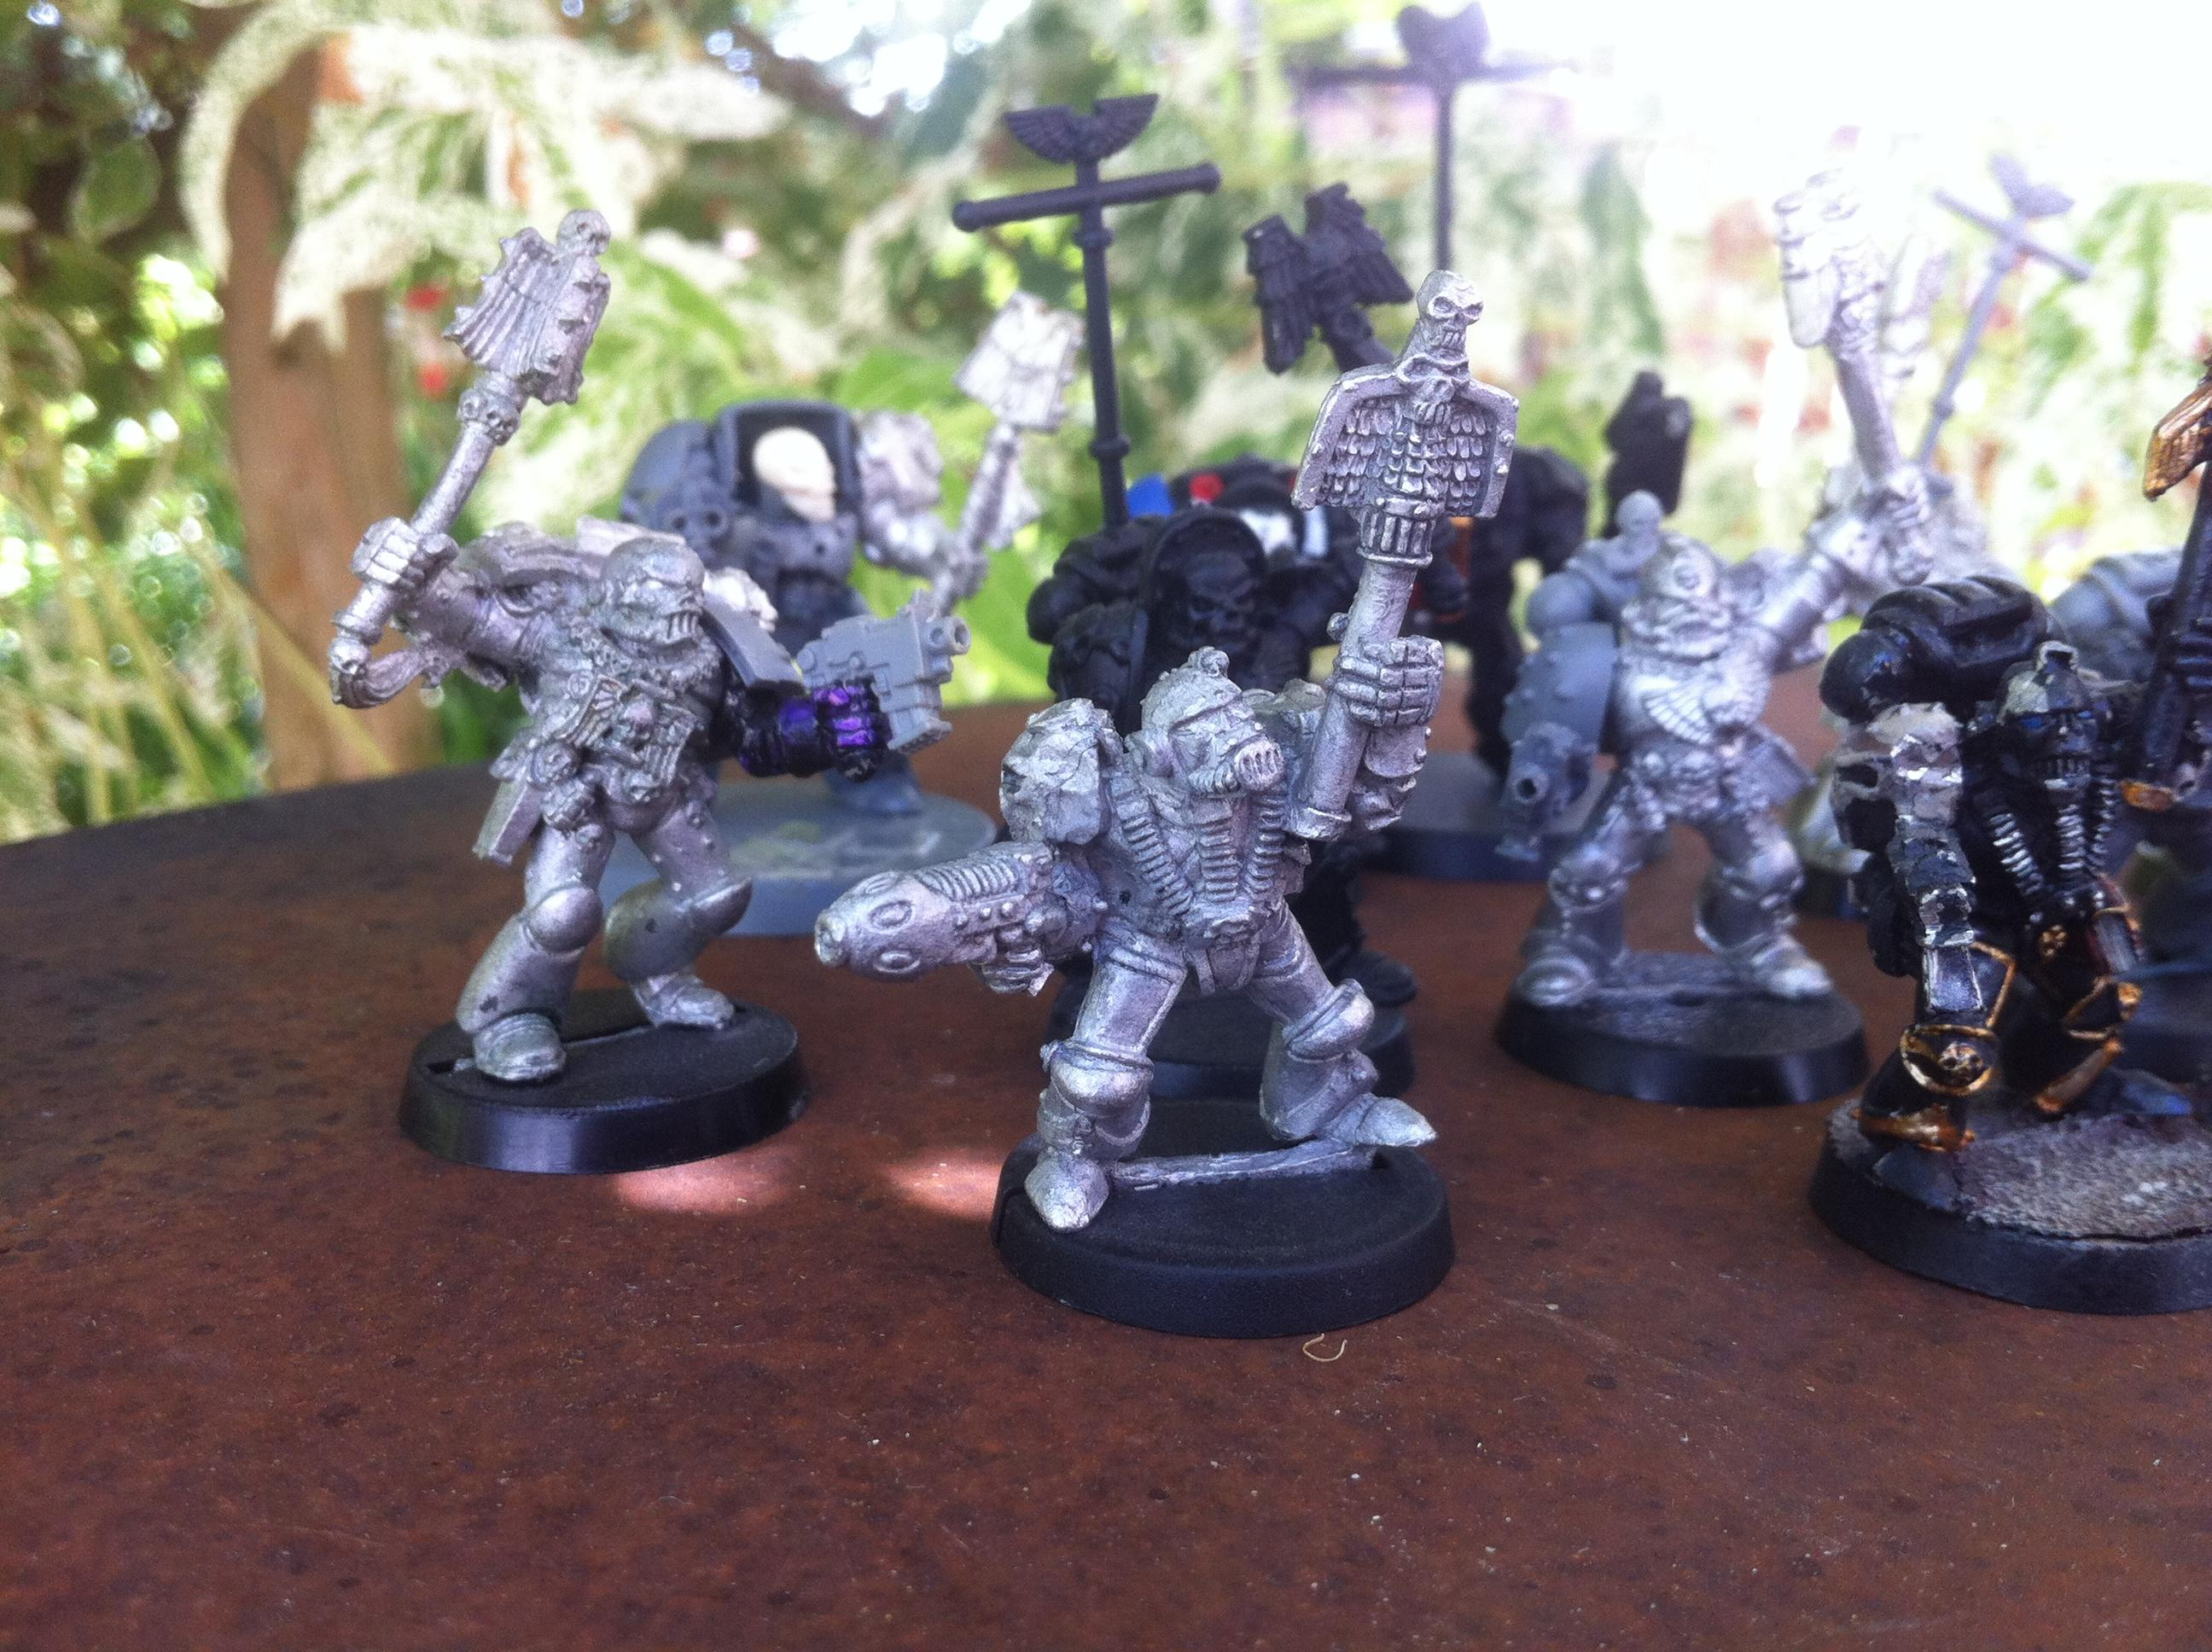 Chaplain, Old, Oldhammer, Rougue, Space Marines, Trader